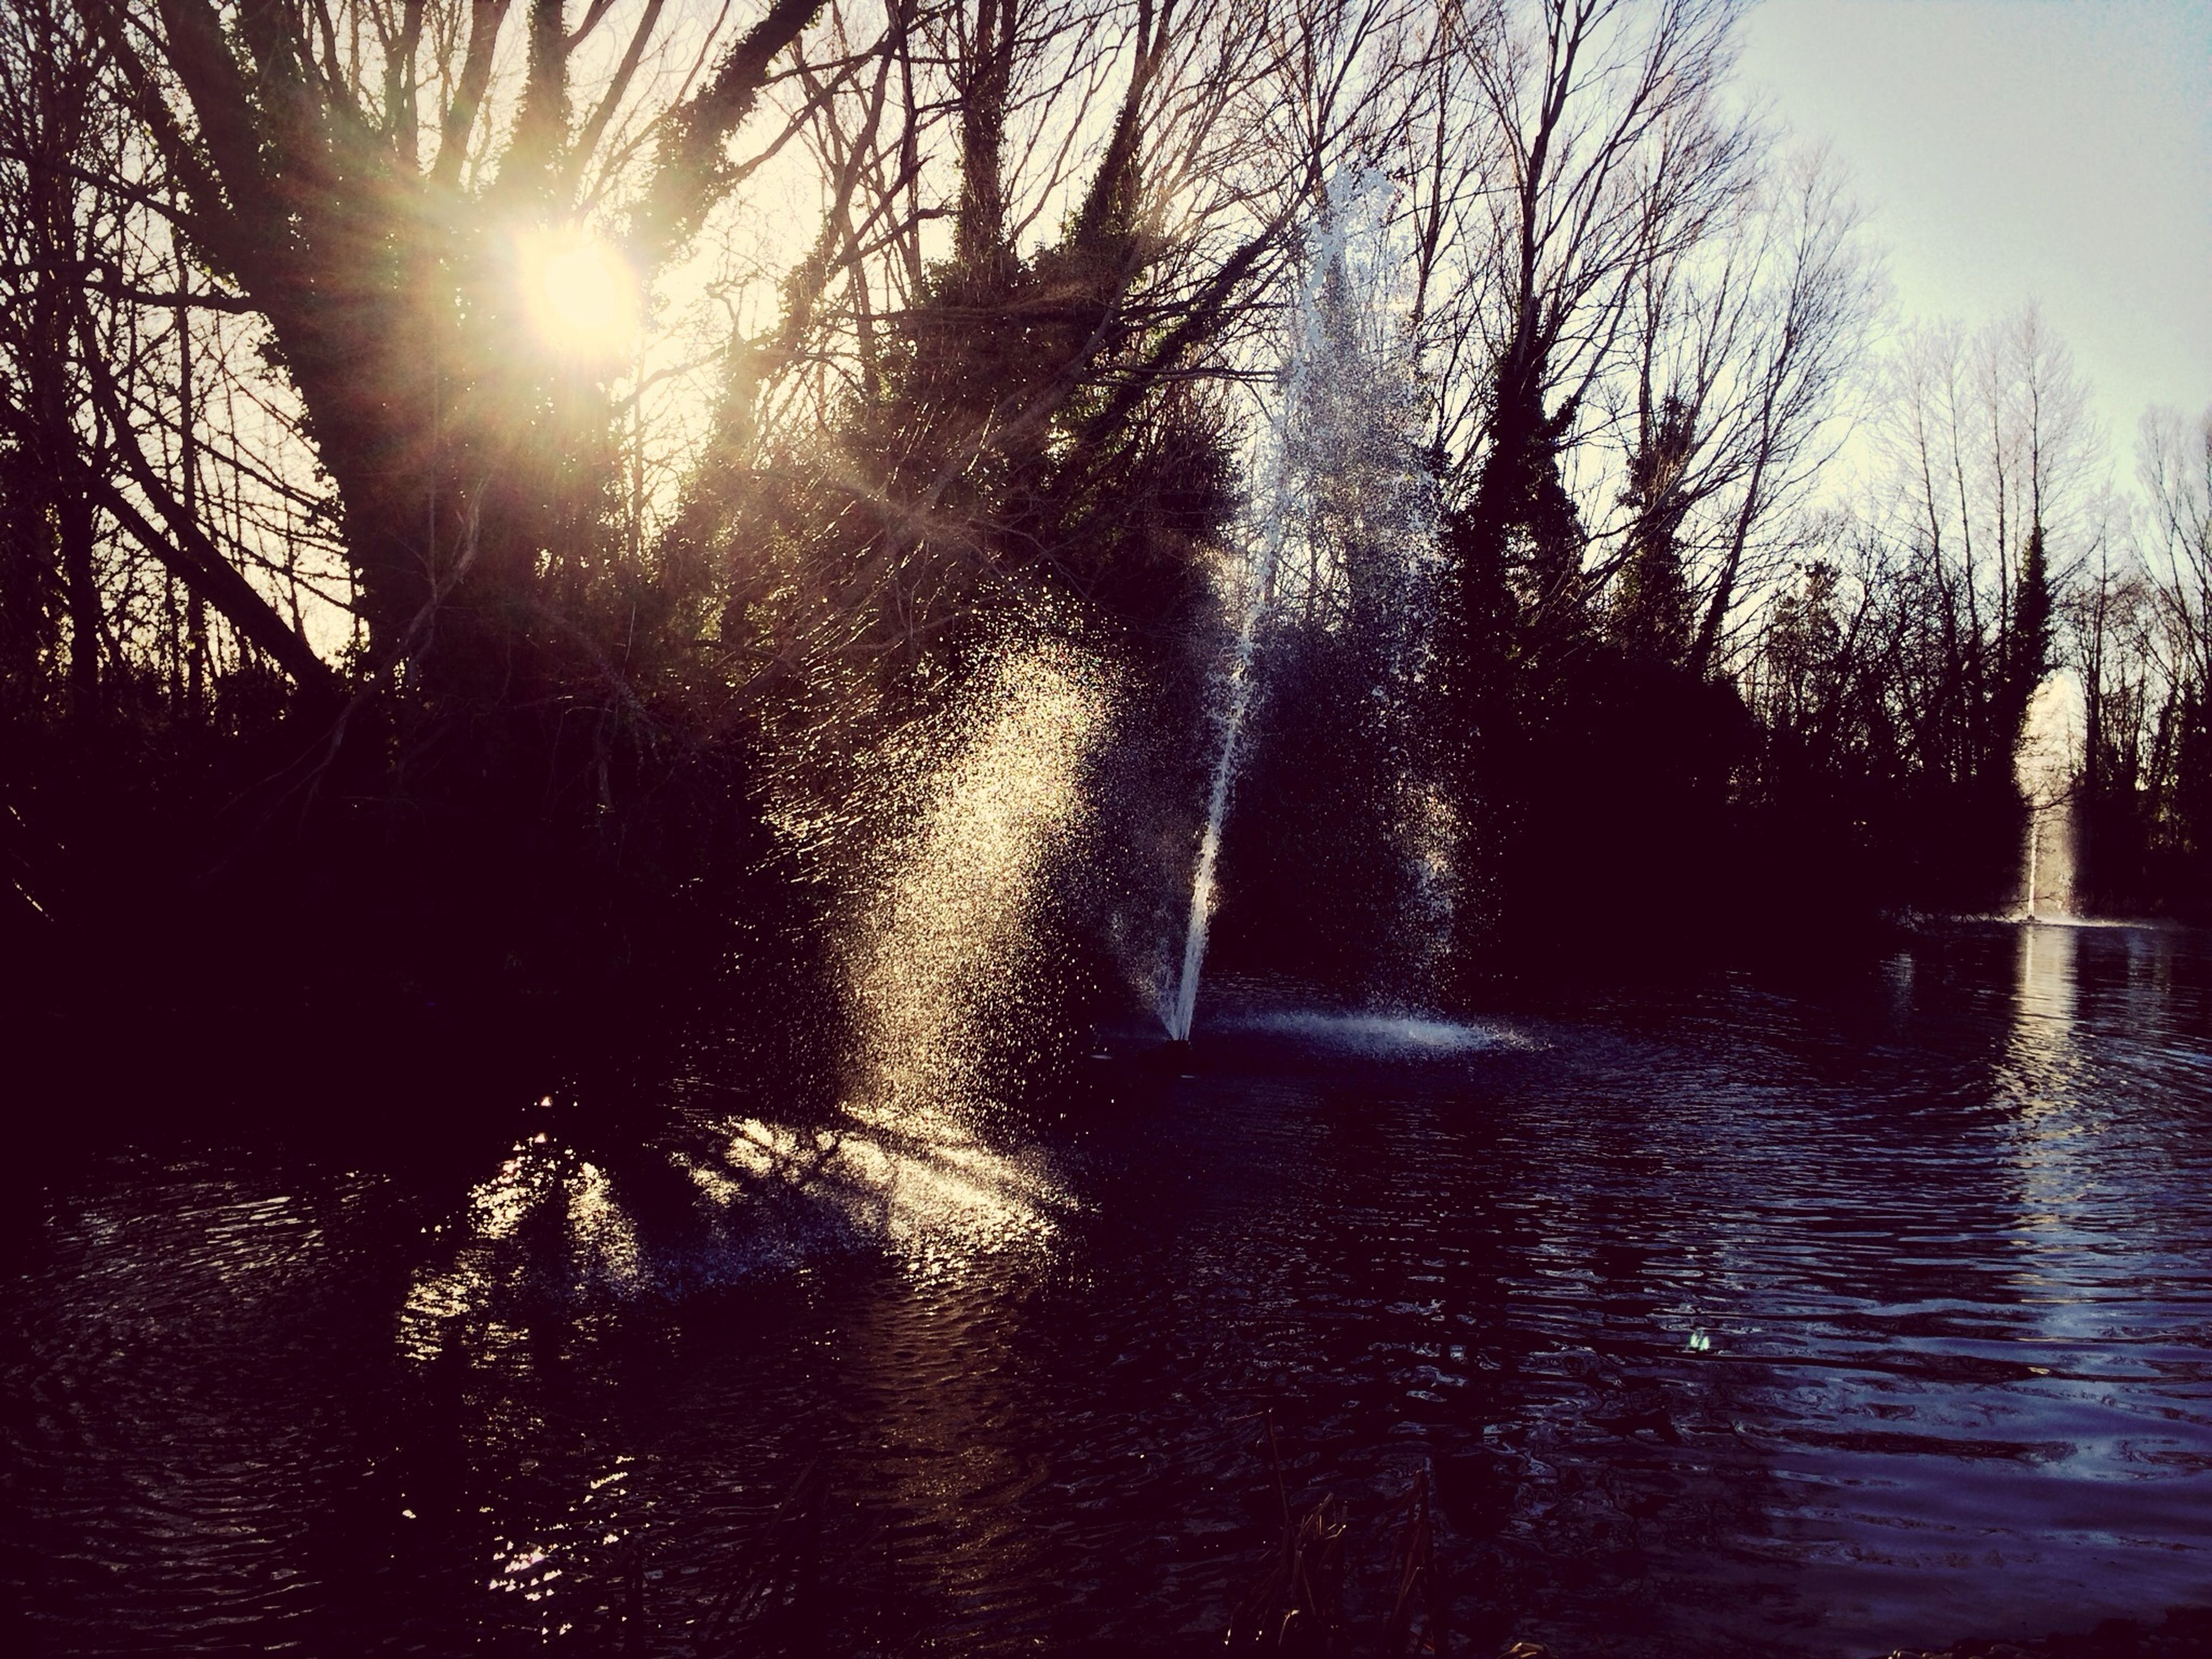 sun, water, sunbeam, tree, sunlight, lens flare, silhouette, rippled, waterfront, bare tree, sky, river, nature, reflection, tranquility, clear sky, sunny, lake, shiny, tranquil scene